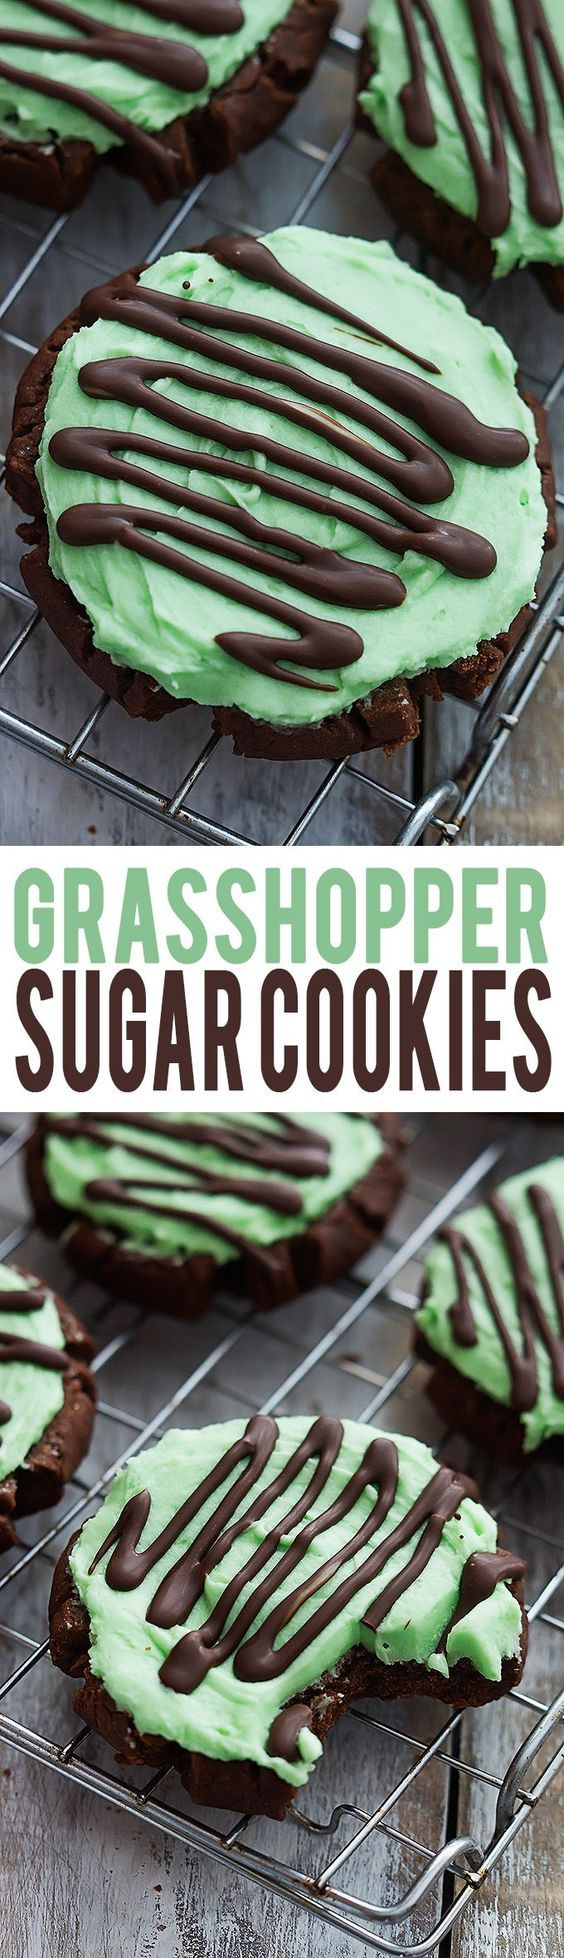 Grasshopper Sugar Cookies - moist chocolate sugar cookies with fluffy mint frosting, topped with Andes mint chocolate drizzle! | Creme de la Crumb: